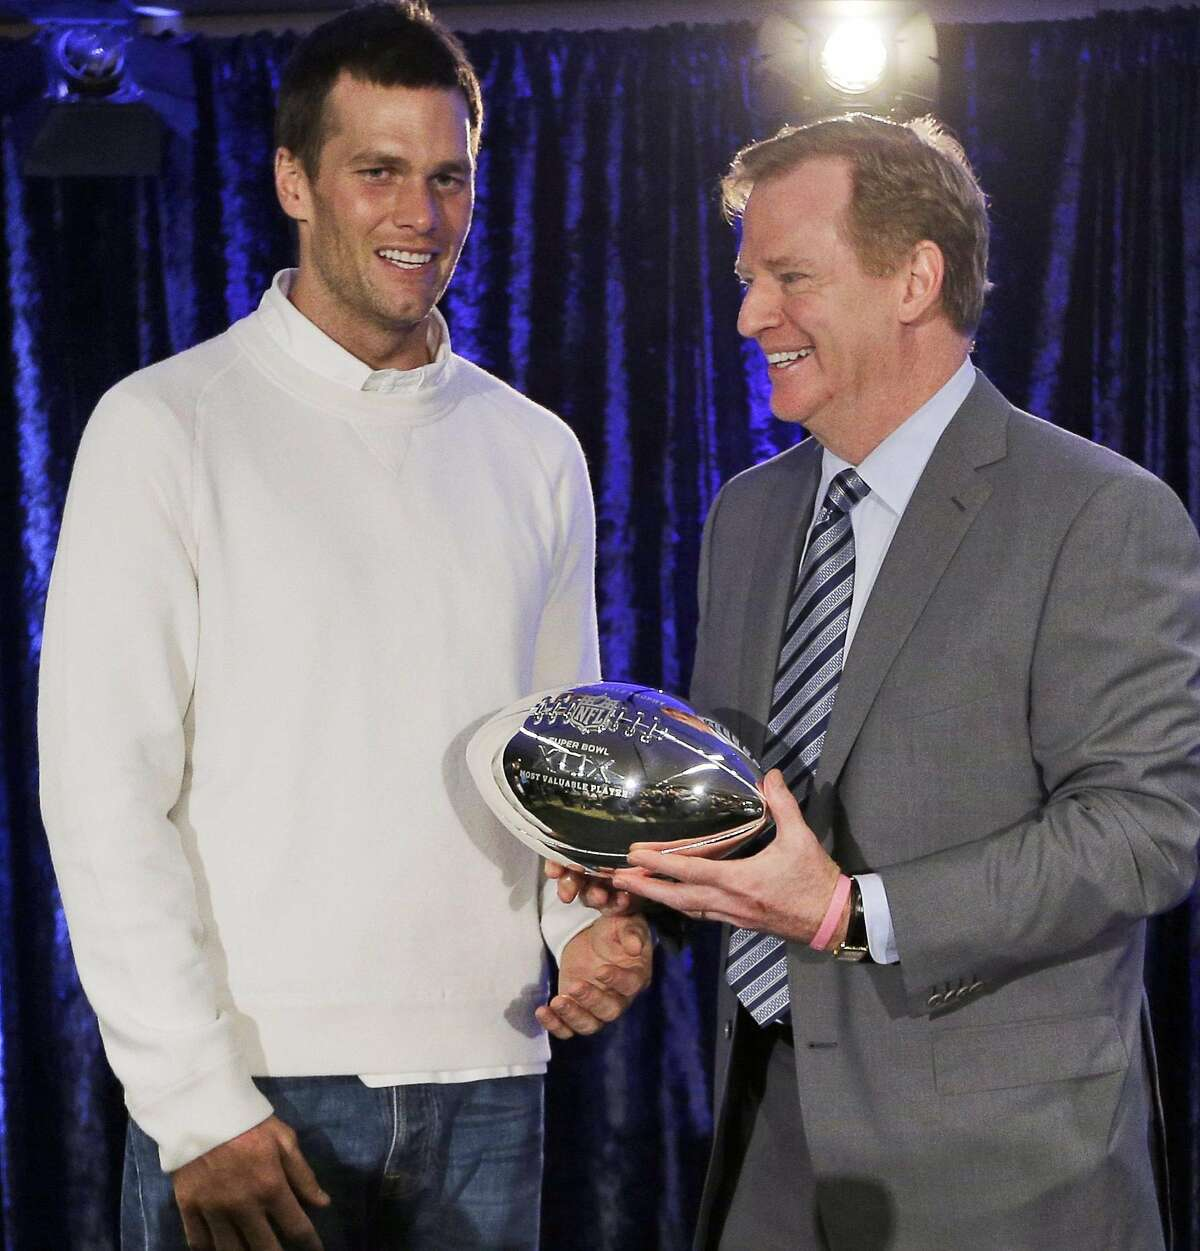 It's been more than two months since NFL commissioner Roger Goodell (right) slapped Patriots QB Tom Brady with a four-game suspension for his role in Deflategate.Click through the gallery to revisit some of sports' most memorable cheating incidents over the years.